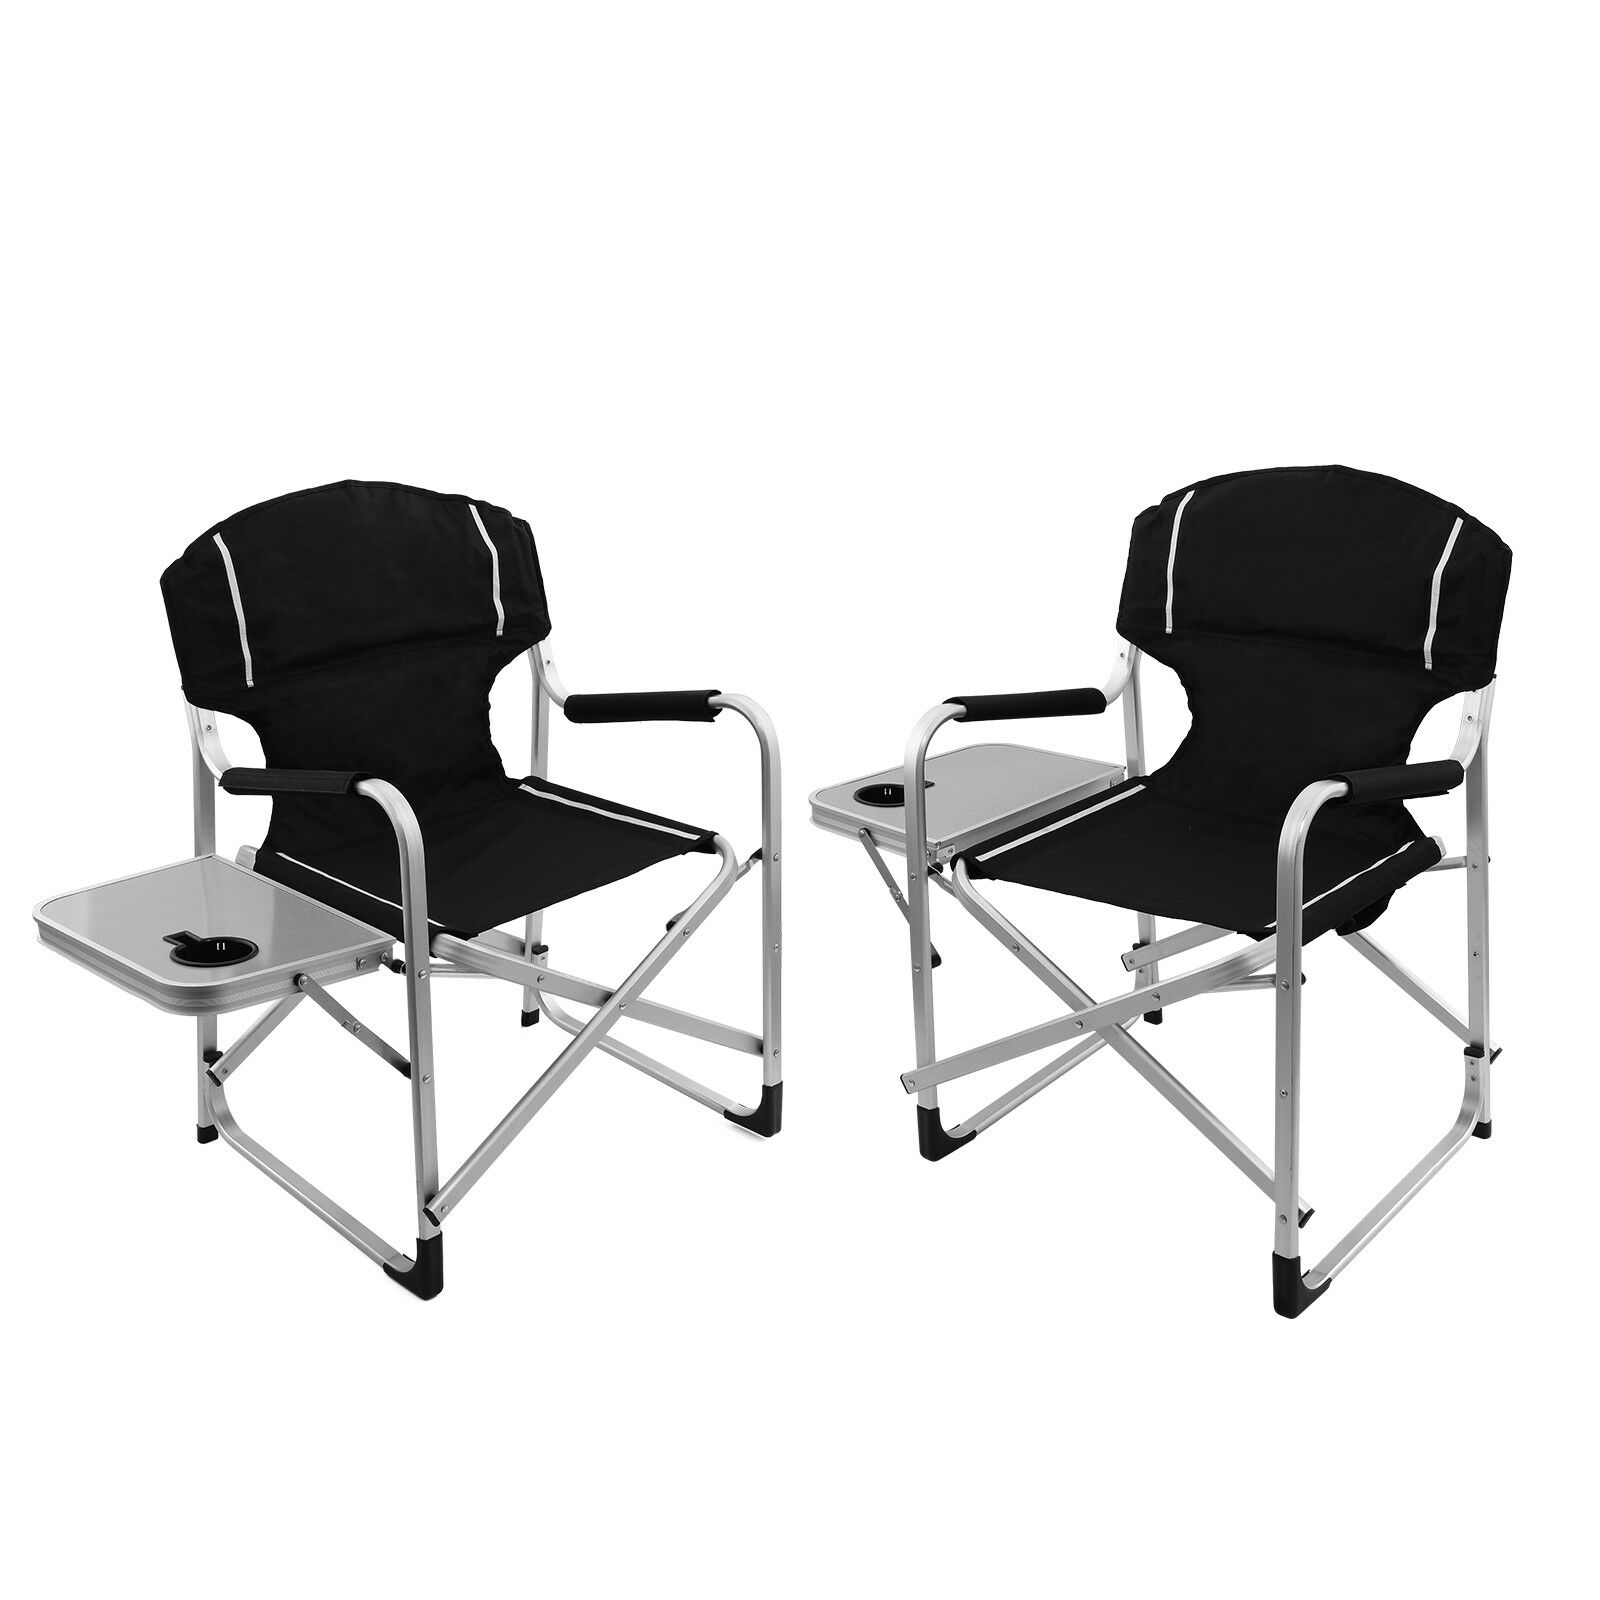 2pc Folding Director's Chair Aluminum Camping Lightweight Chair with Side Table